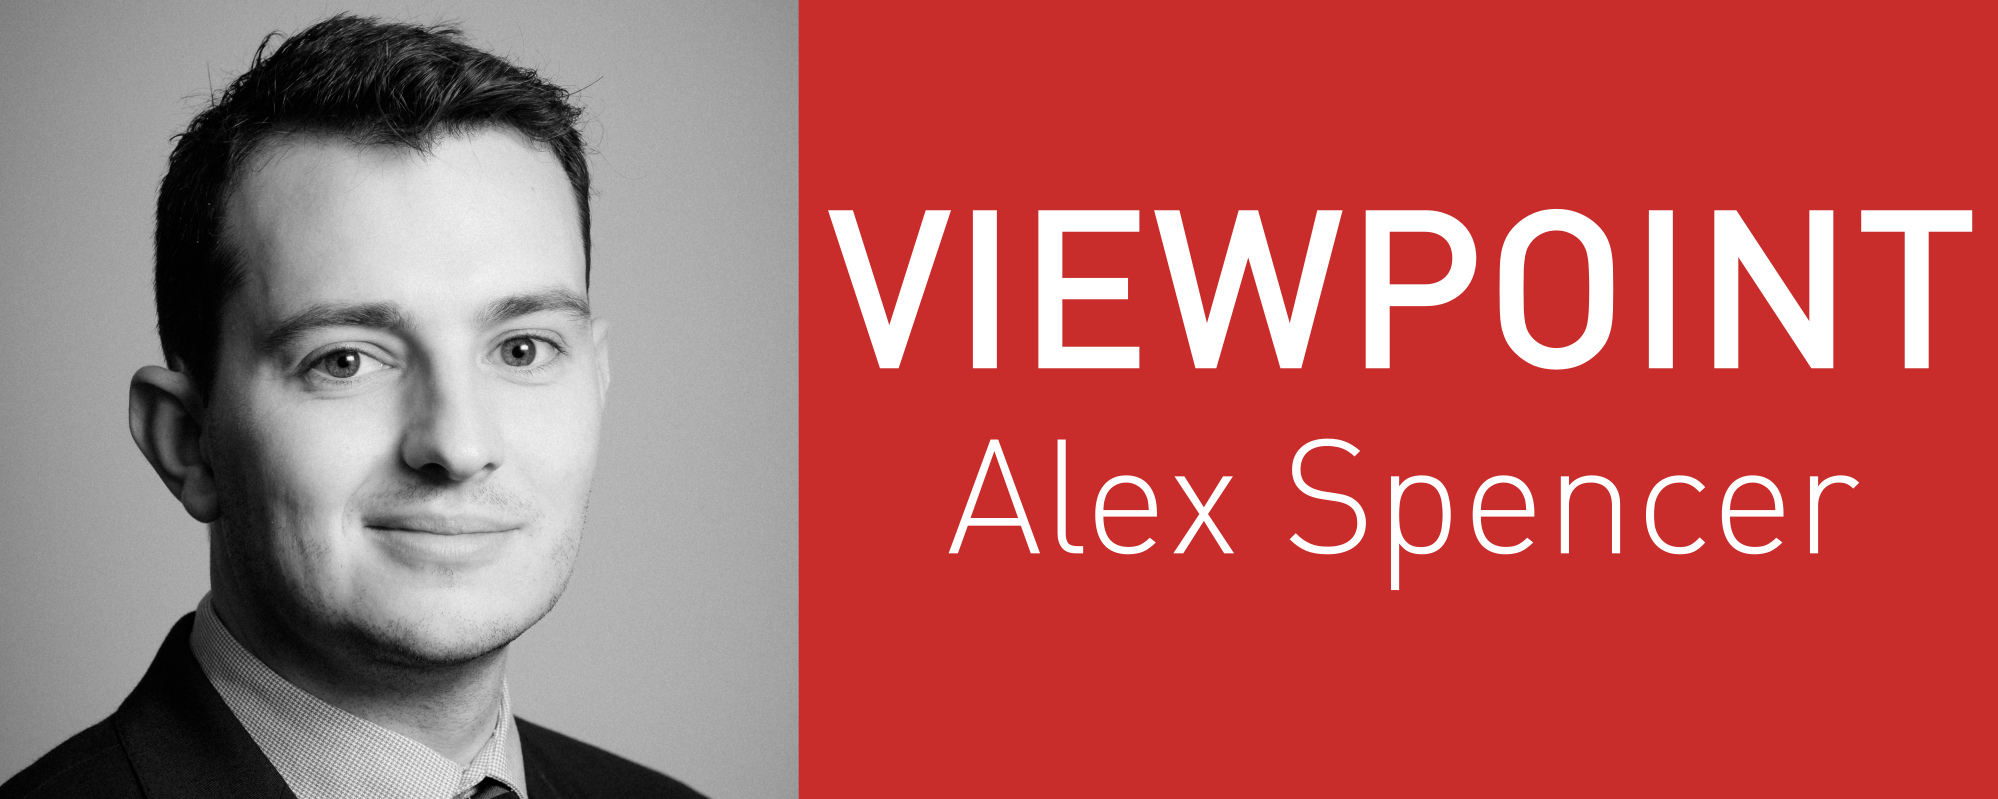 Alex Viewpoint